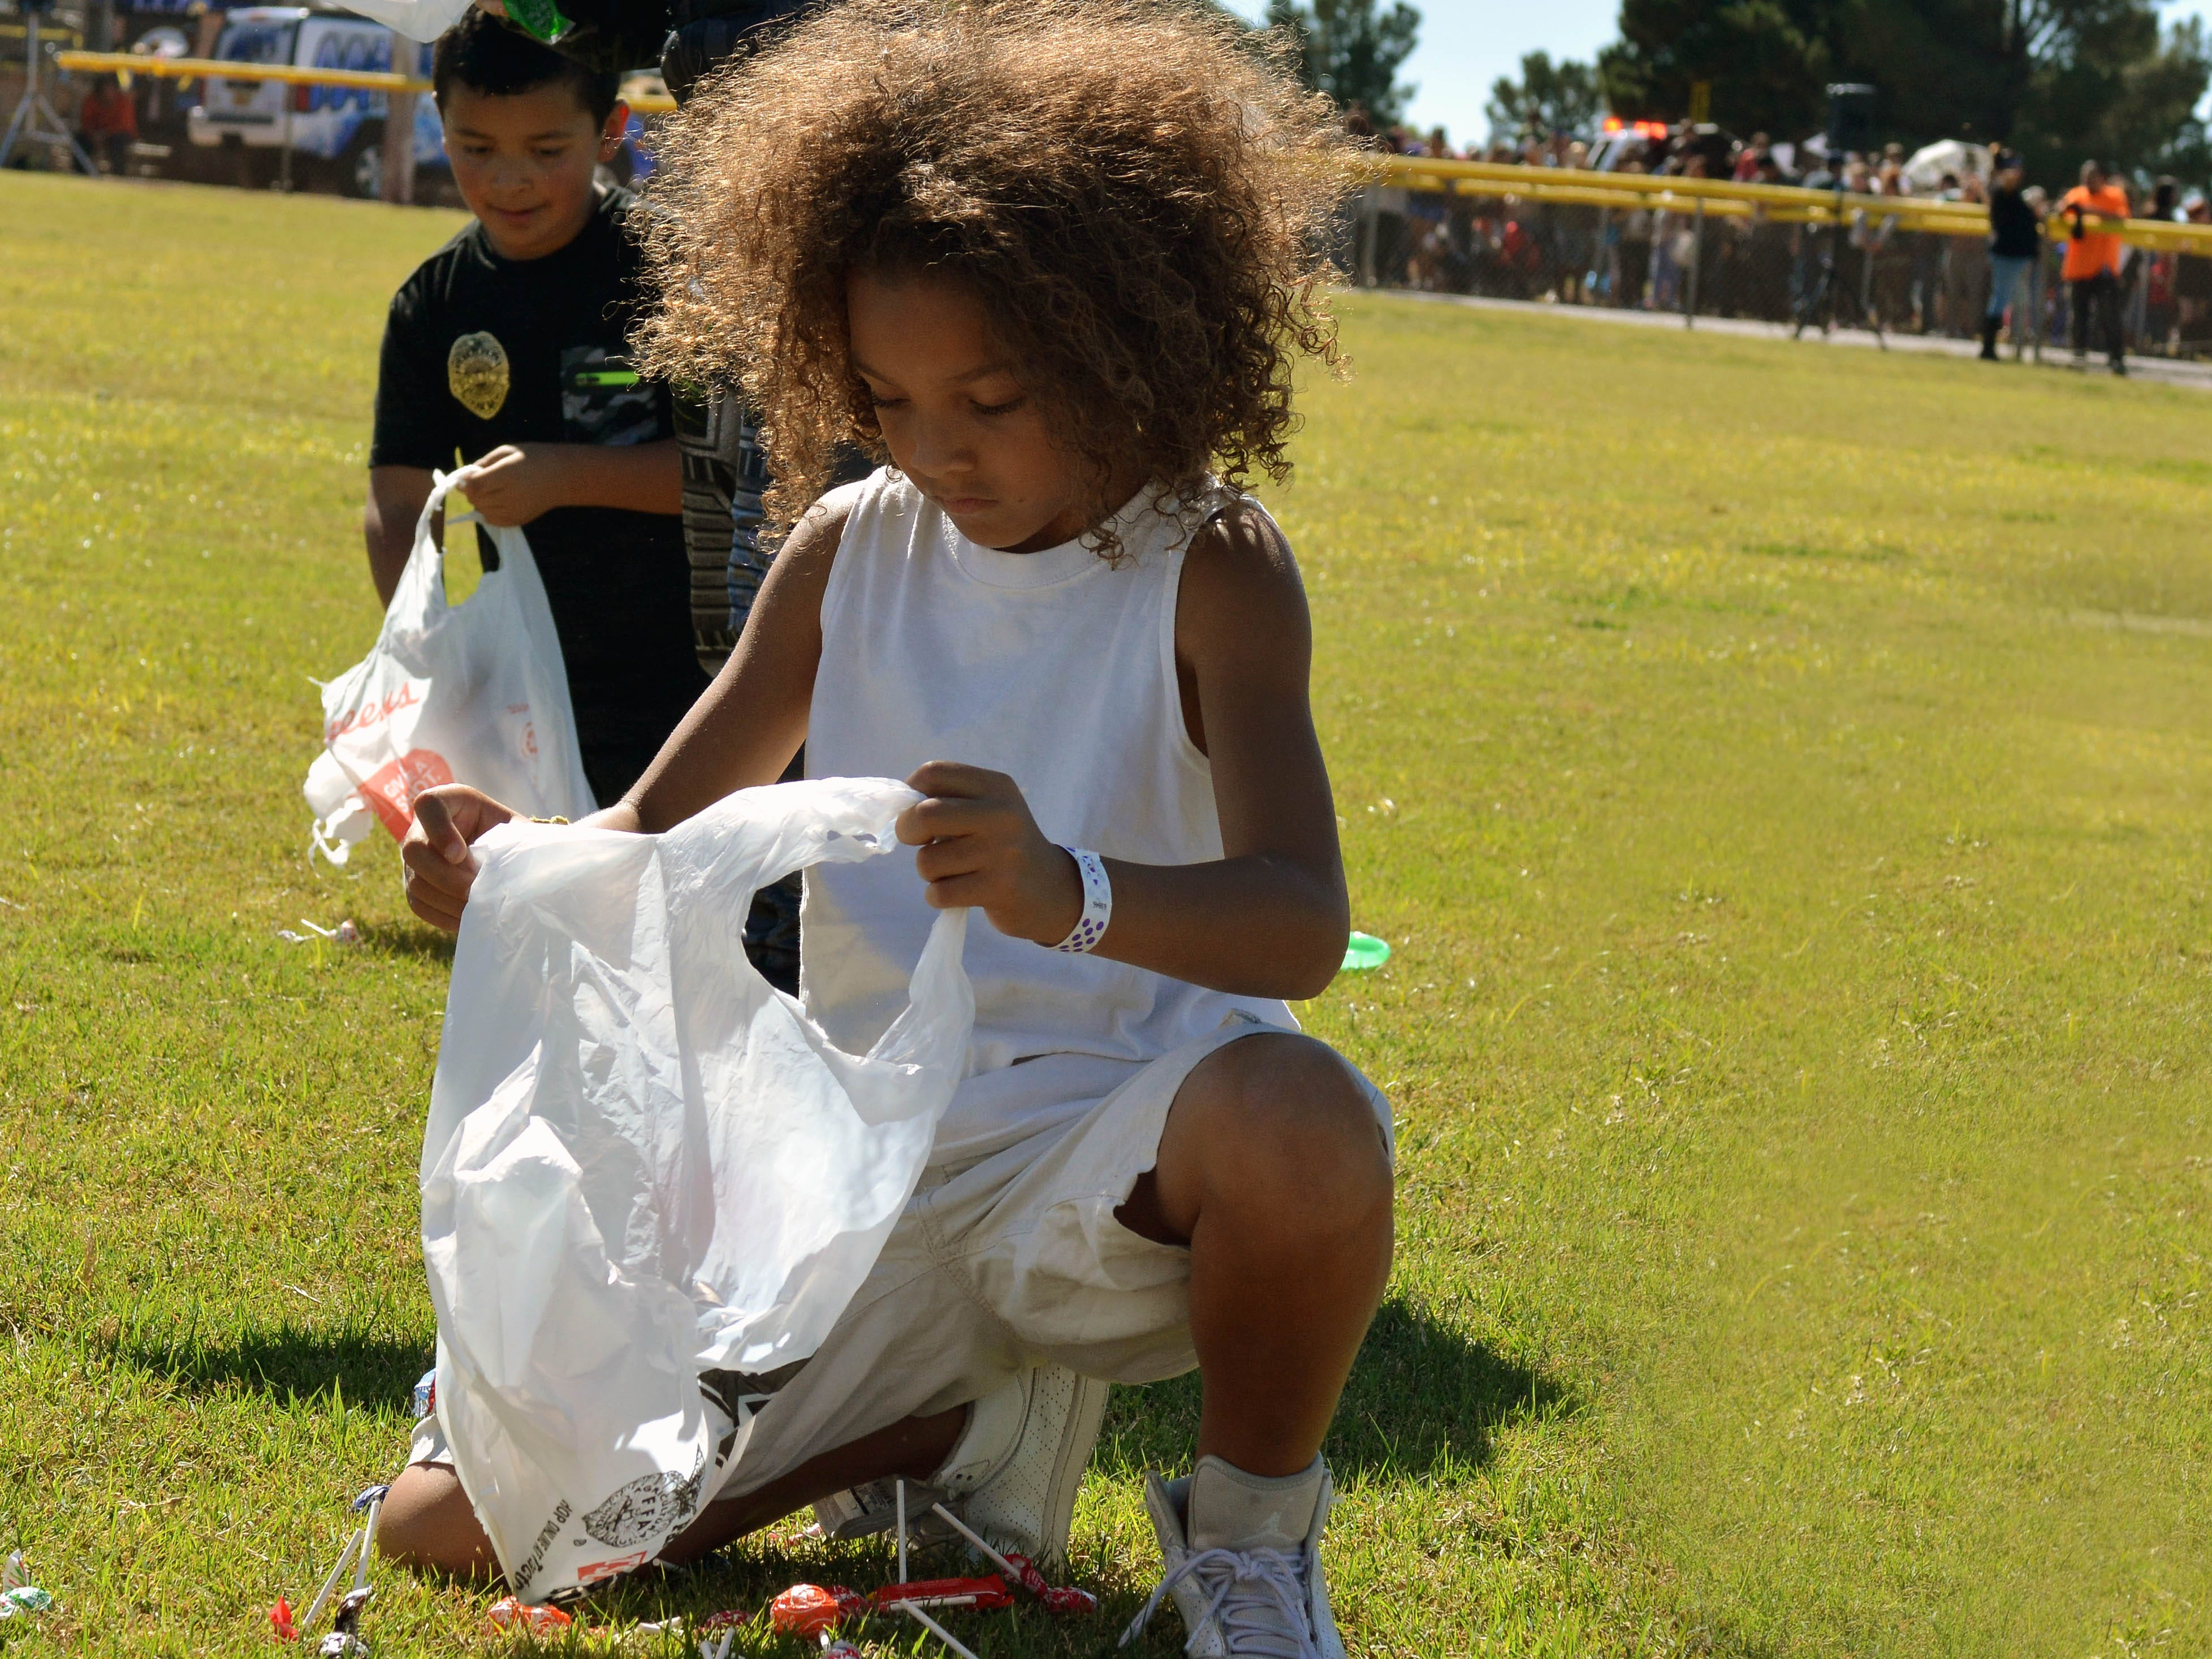 Eziah O'Kelley, 8, gathers candy during the 14th annual Great Pumpkin Candy Drop, held Sunday, Oct, 28 at Maag Park.